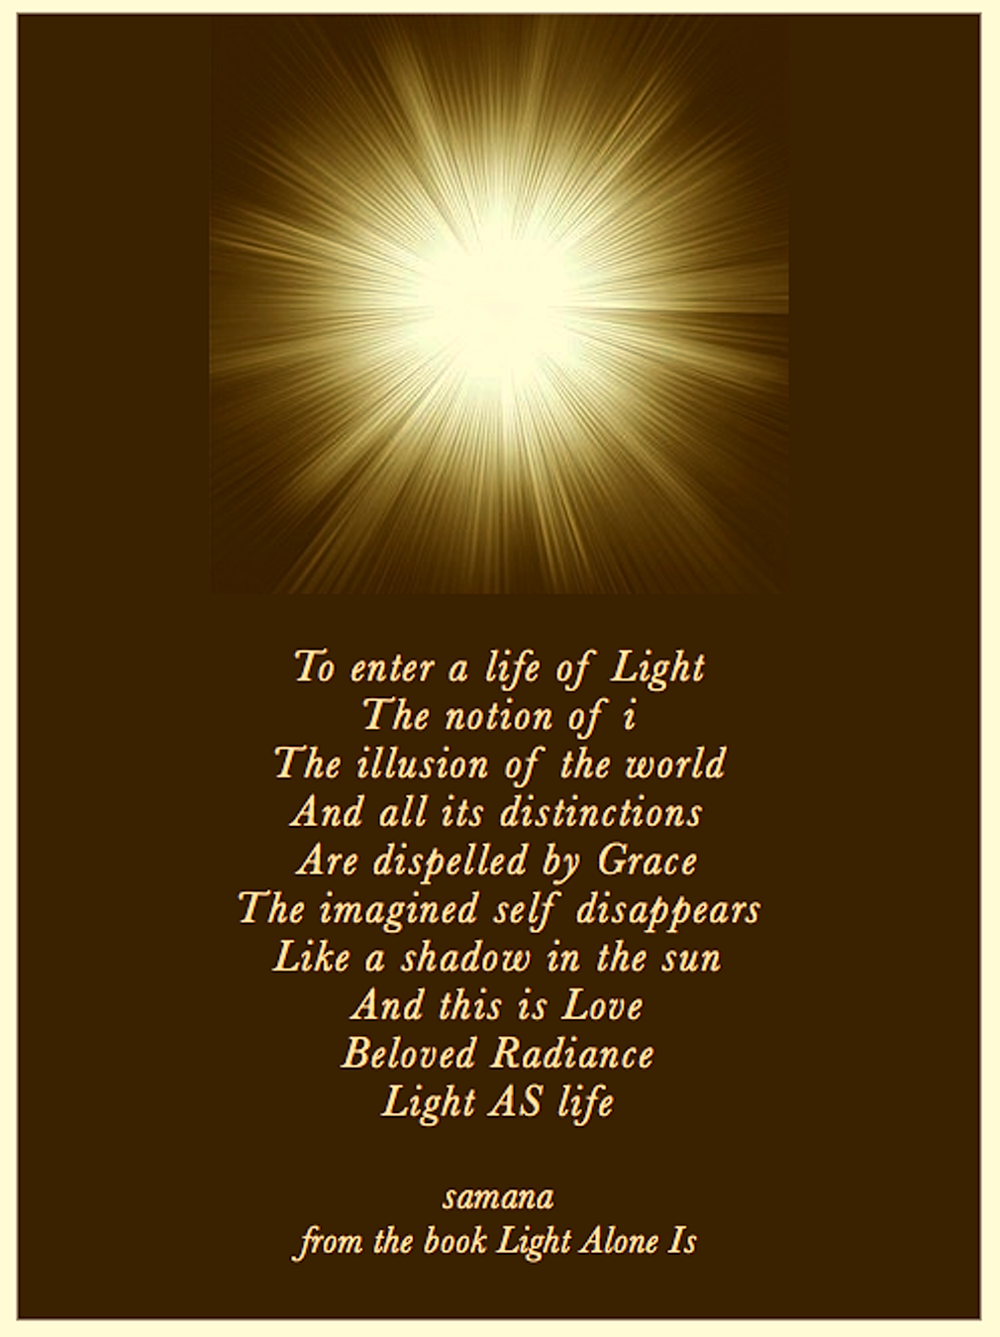 To enter a life of Light© Samana